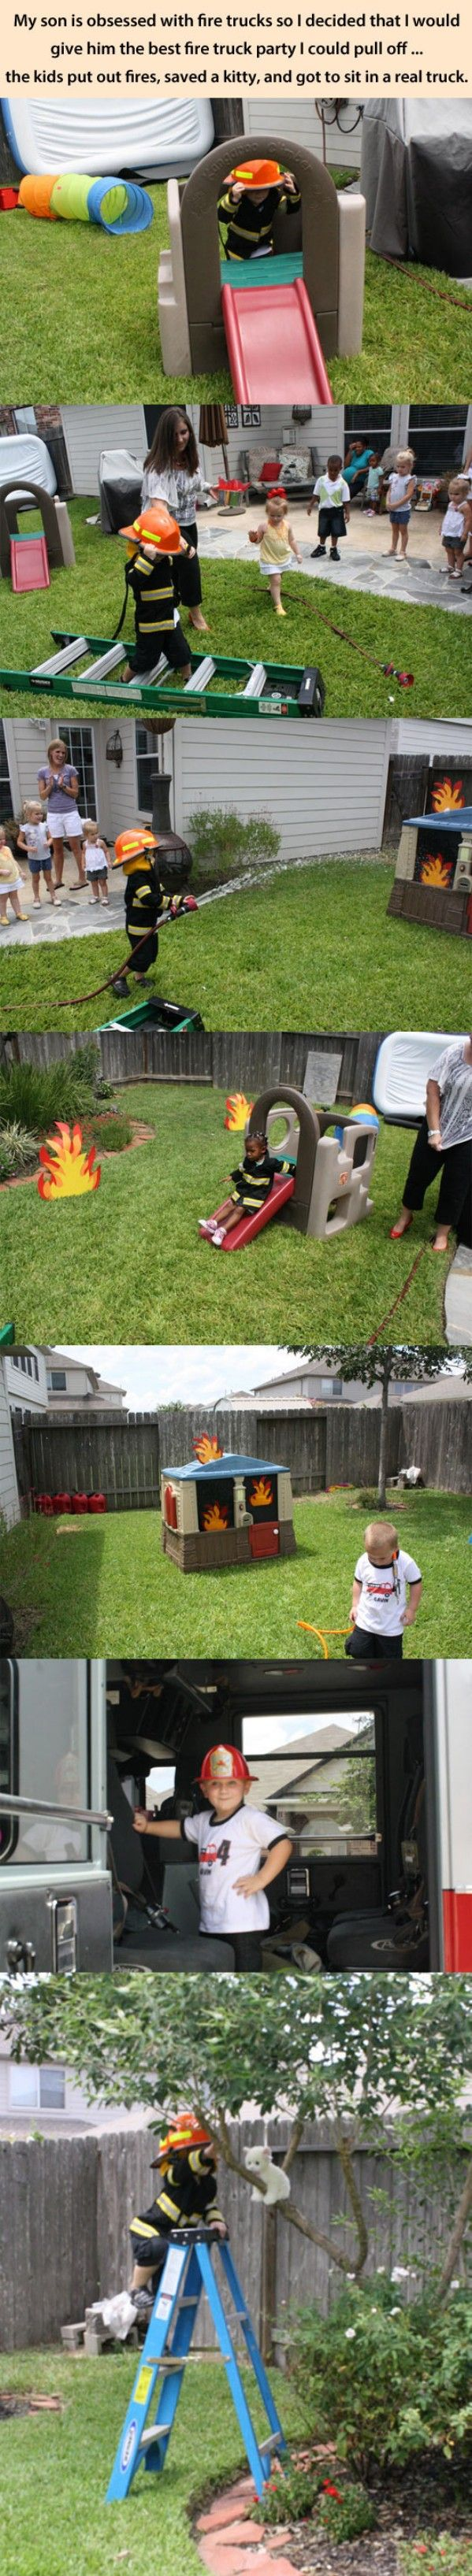 Fireman Birthday Party funny picture-What a unique party idea!